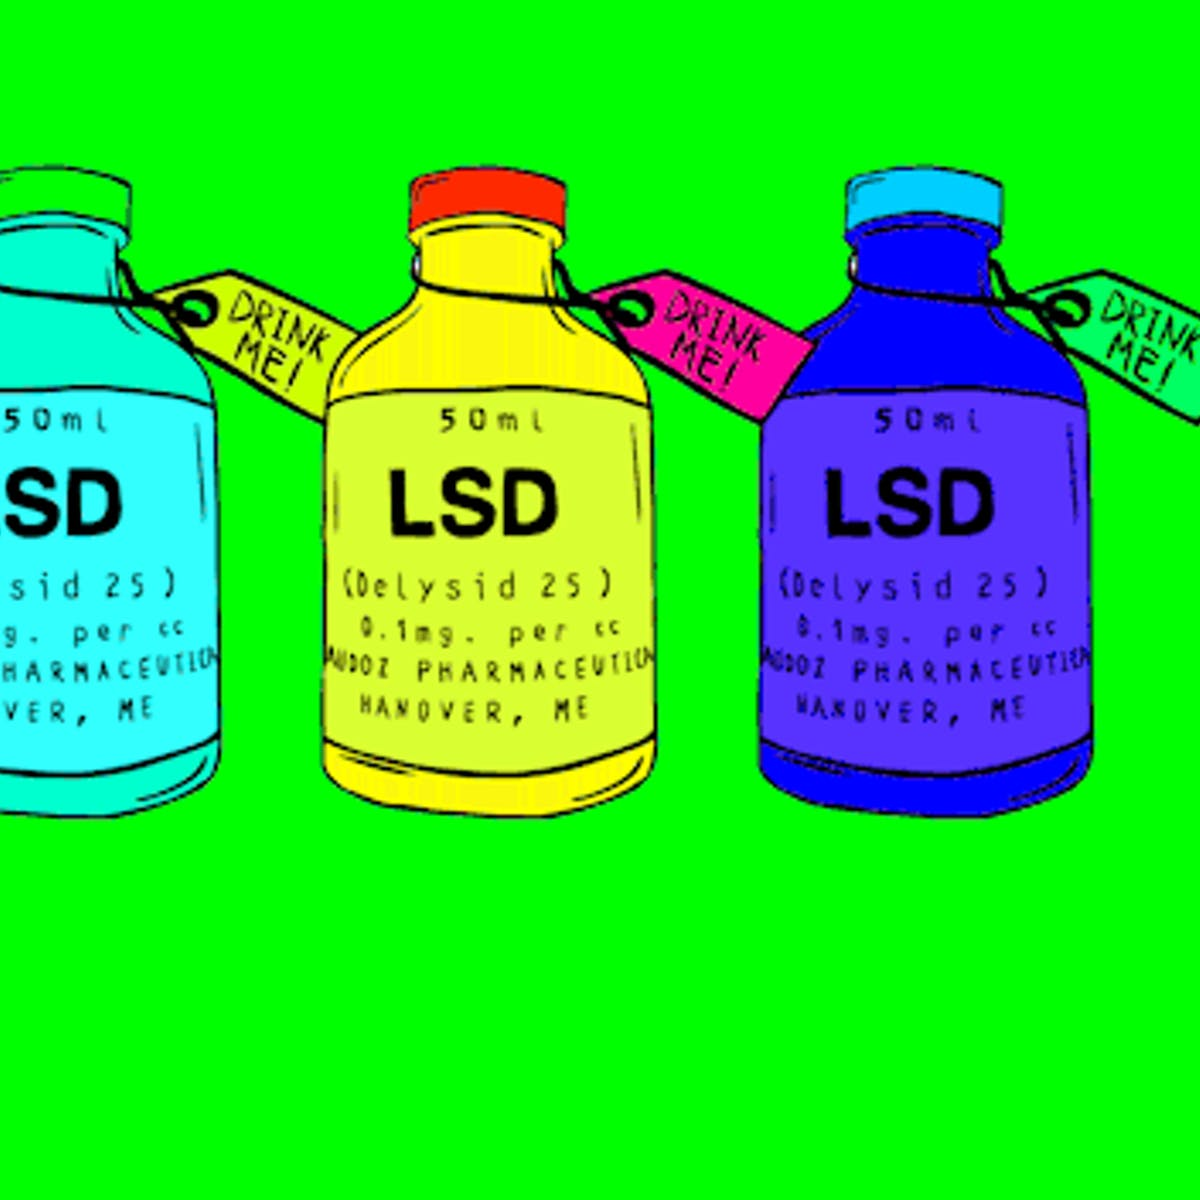 Crowdfunders Greenlight World's First LSD Microdosing Study